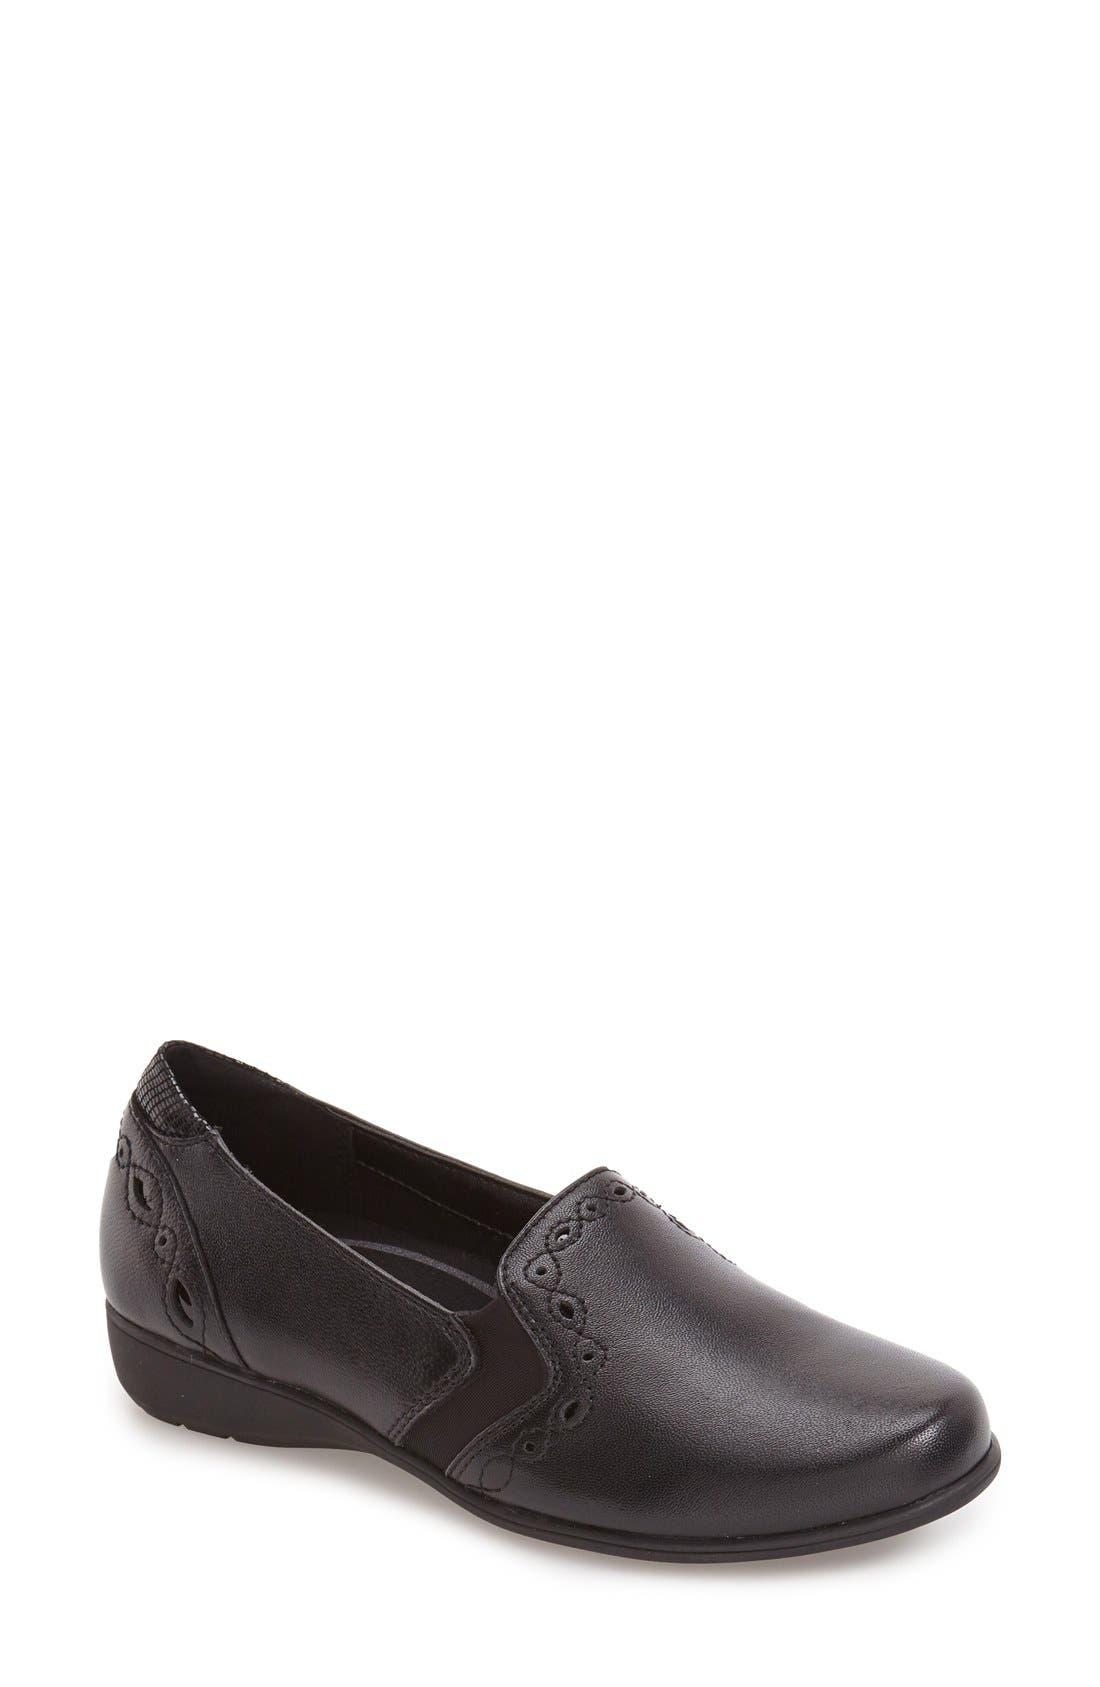 'Adalyn' Loafer,                         Main,                         color, BLACK LEATHER